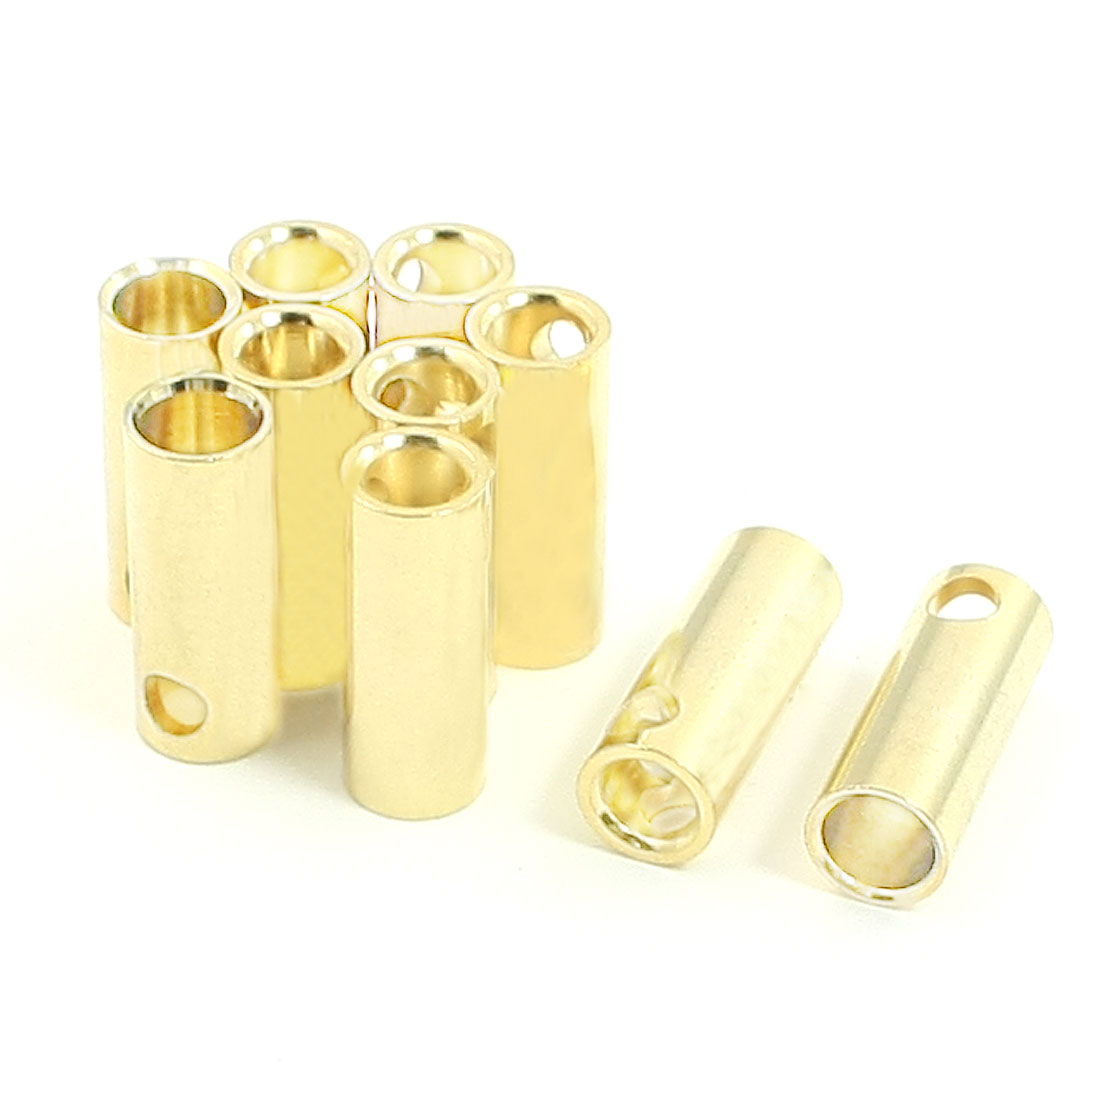 5.5mm Brushless Motor Spare Part Banana Female Connector 10 Pcs